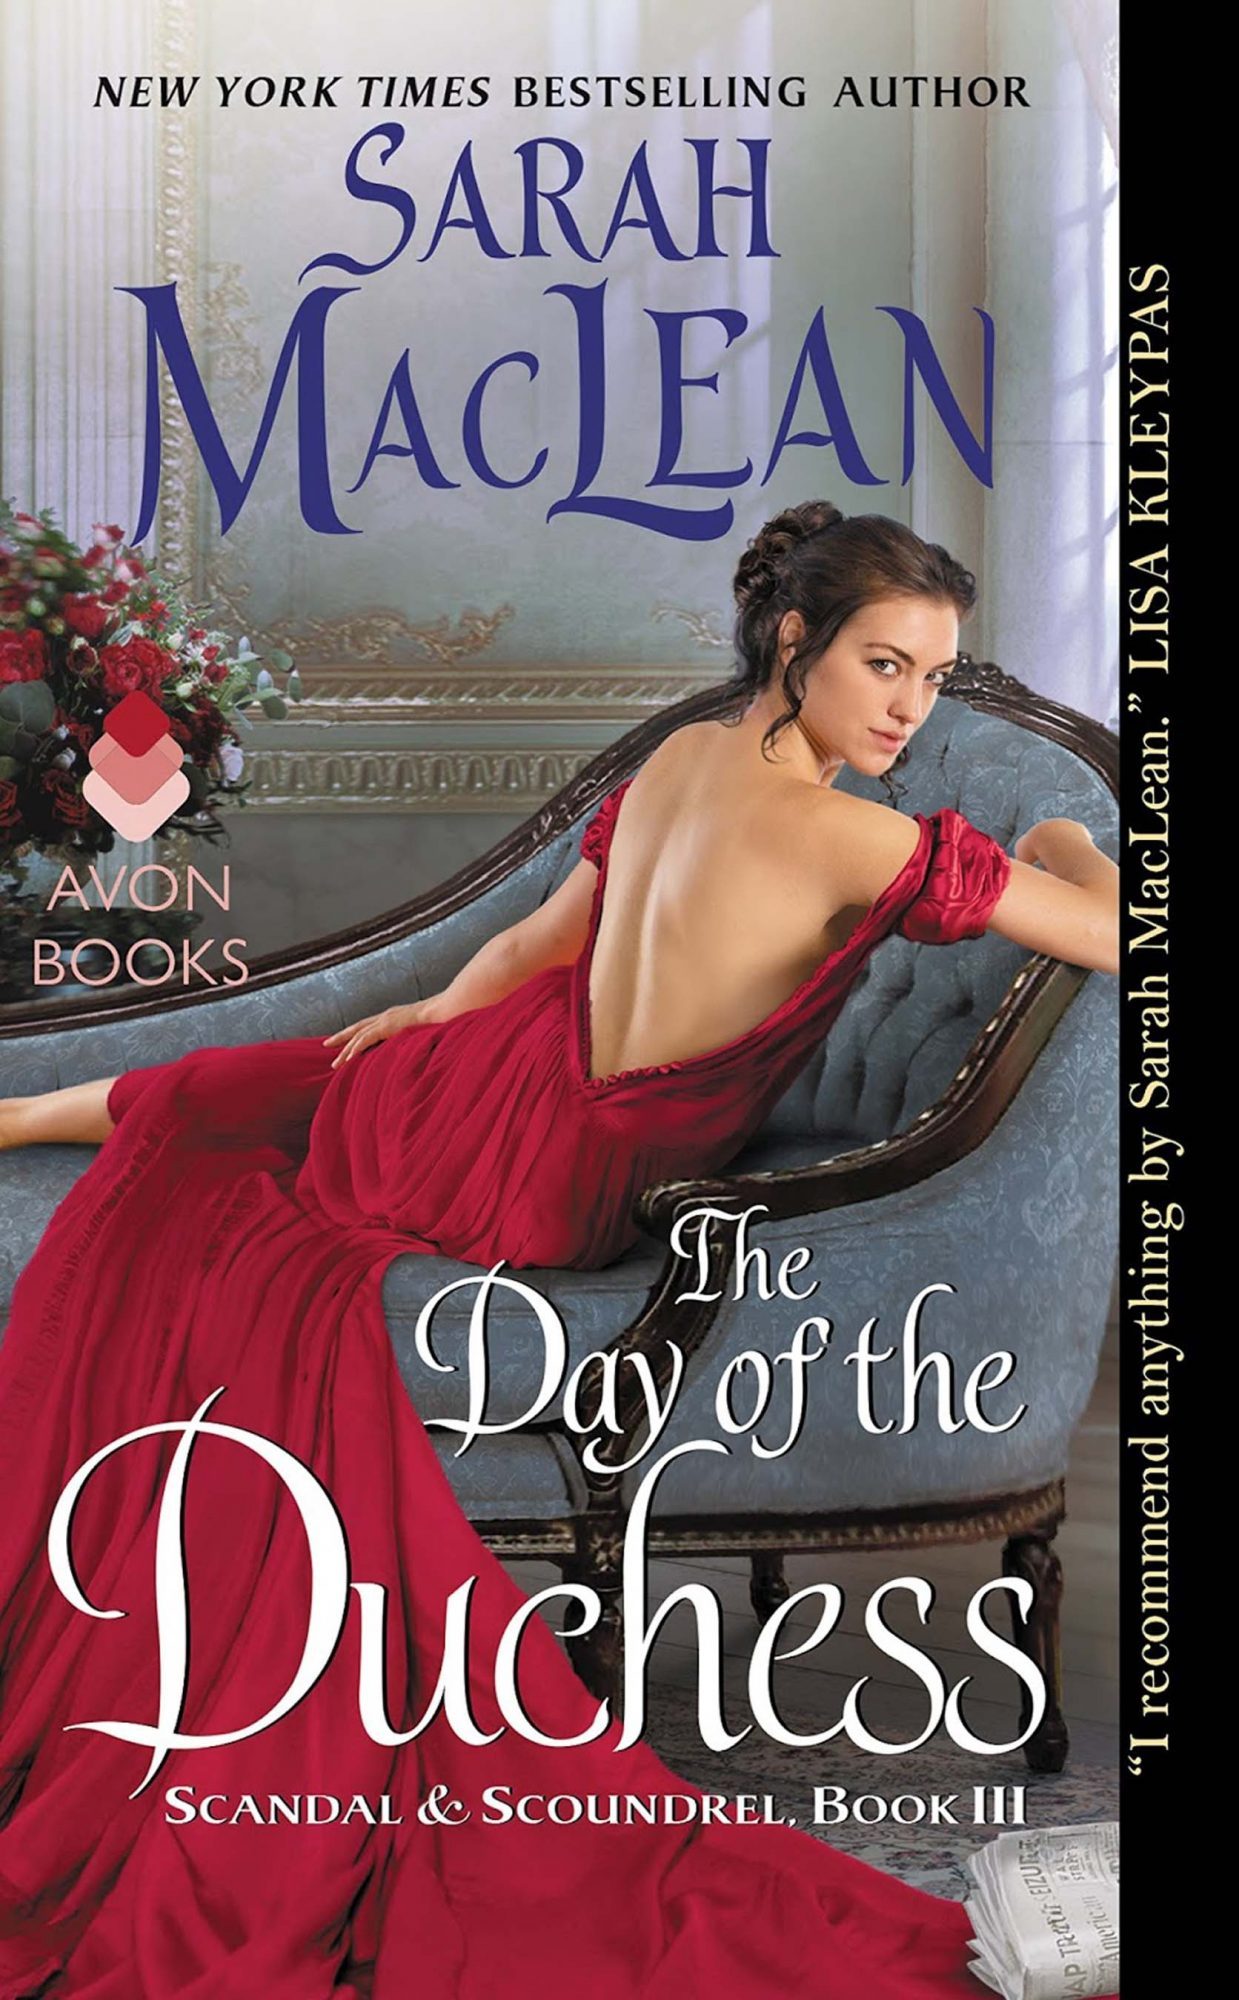 The Day of the Duchess, by Sarah MacLean